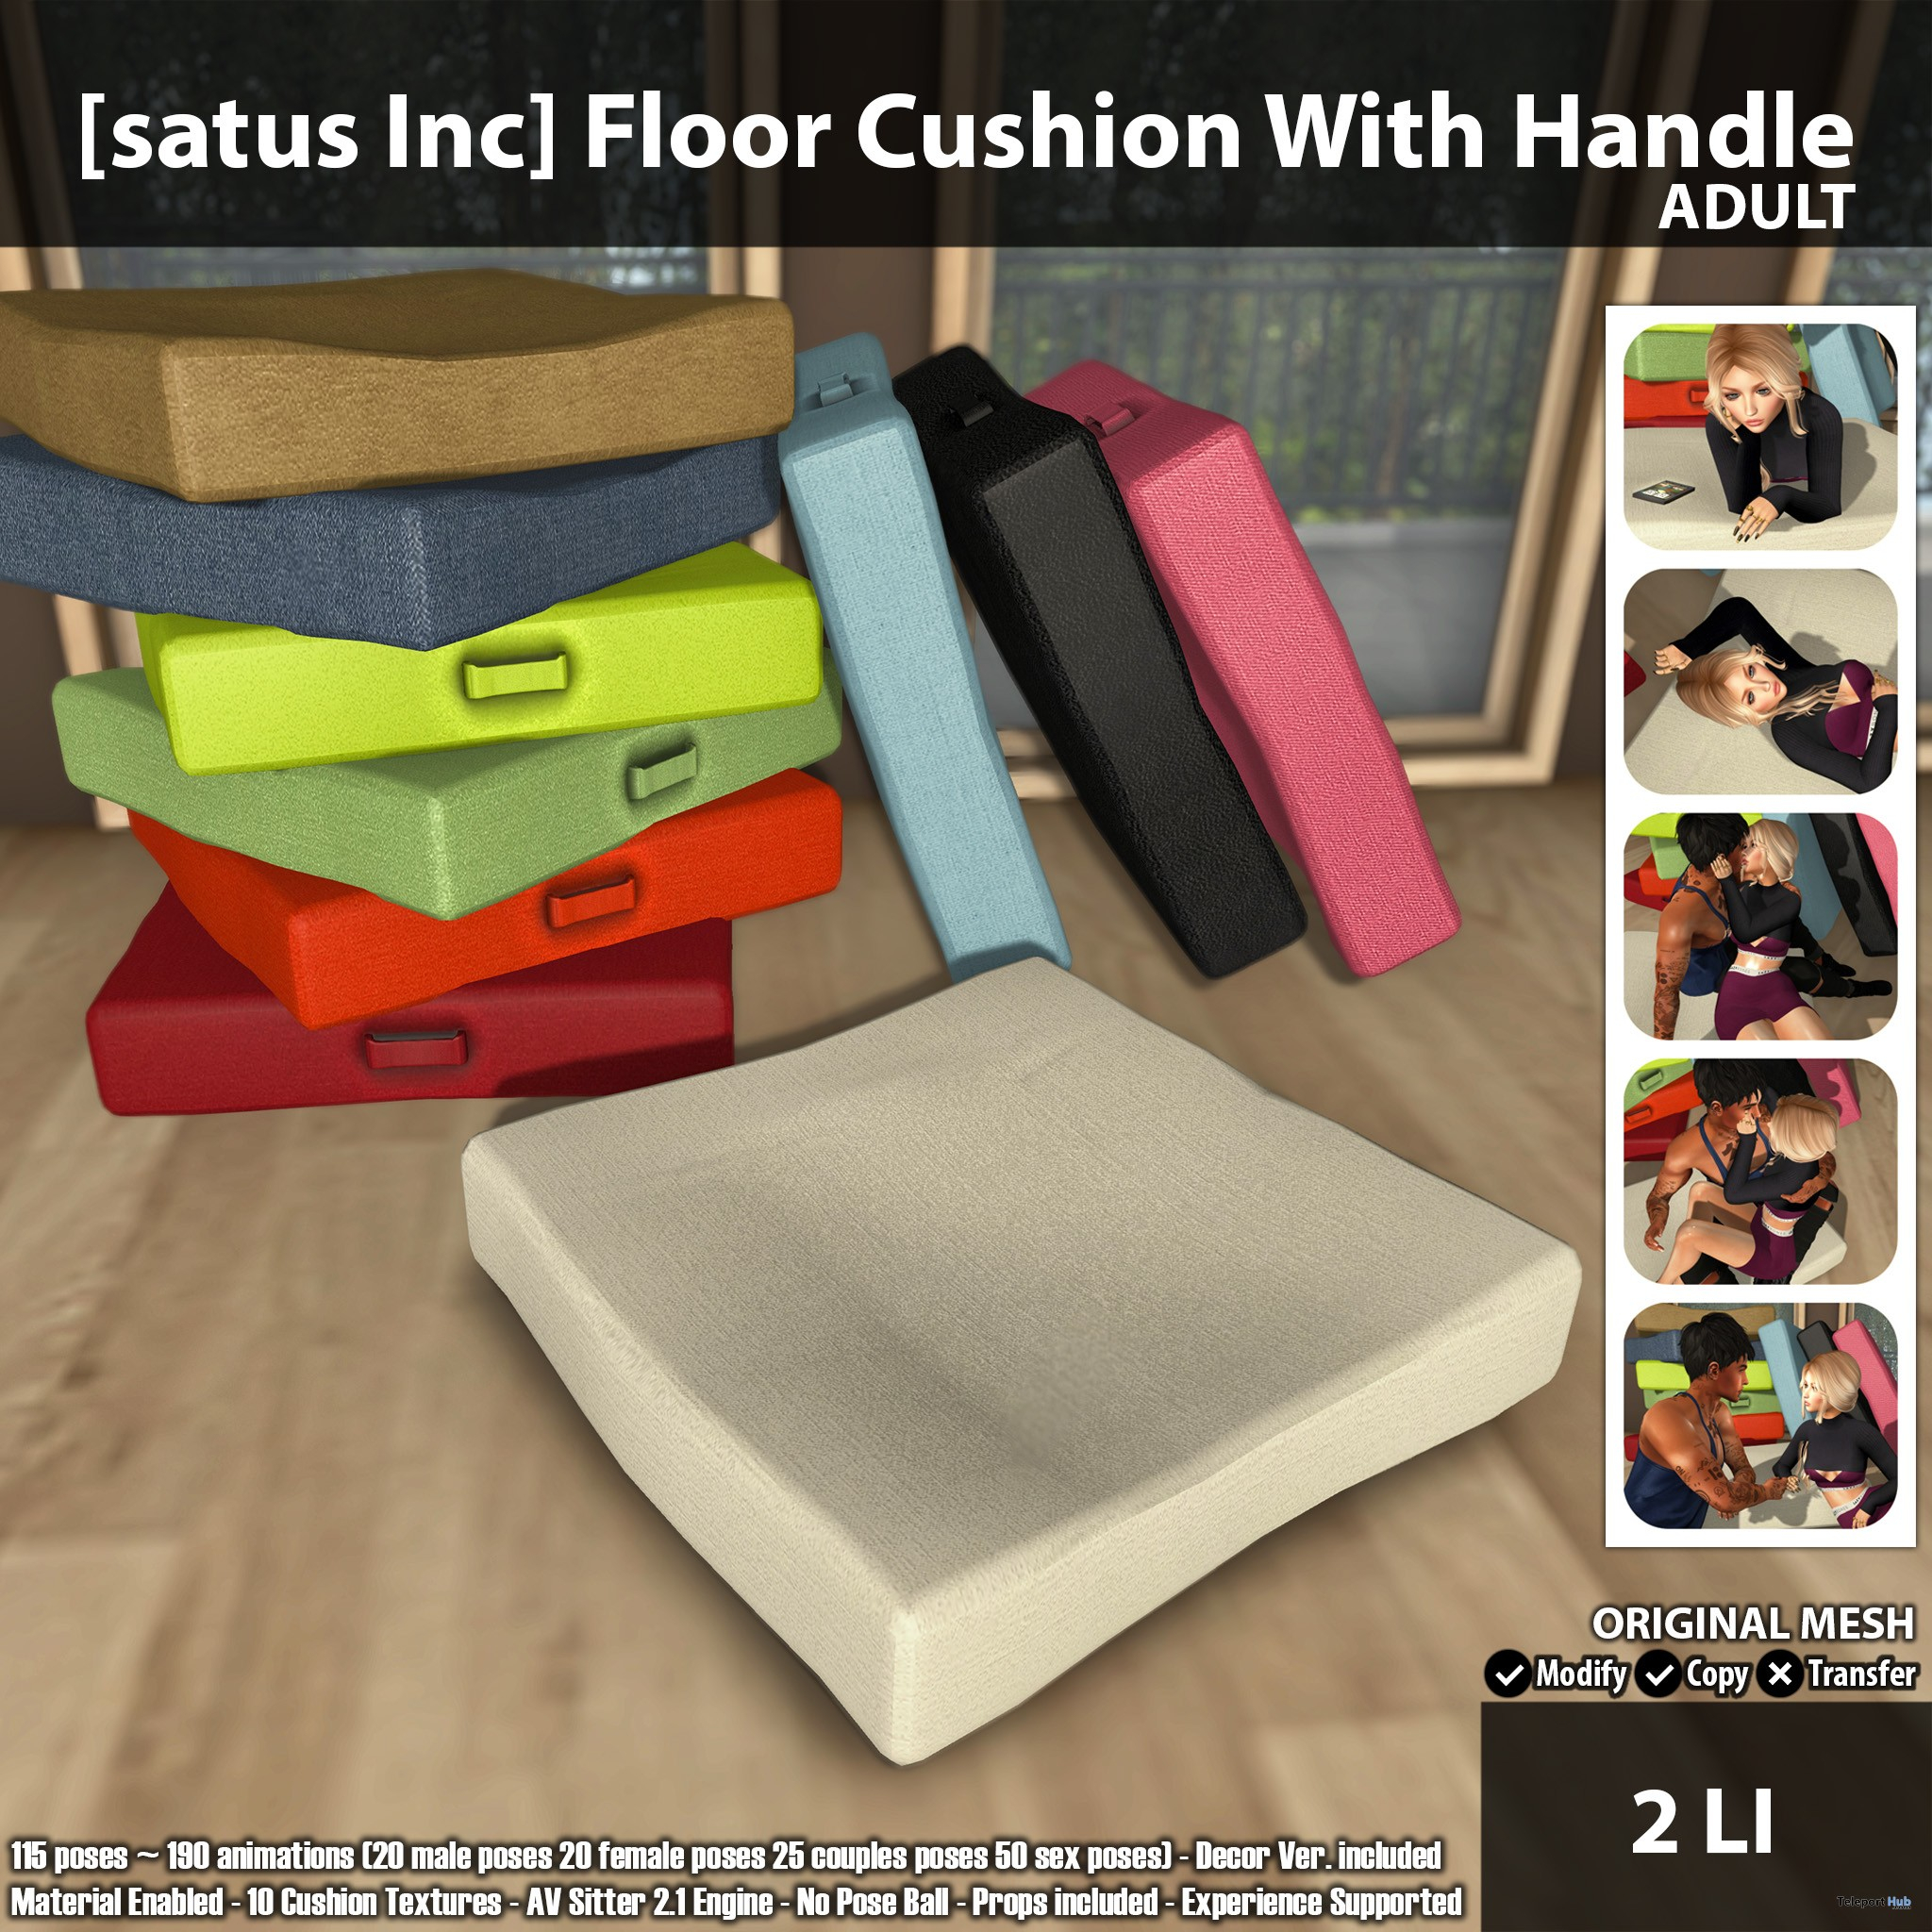 satus Inc Floor Cushion With Handle Adult Ad - New Launch: Ground Cushion With Deal with Grownup & PG by [satus Inc]